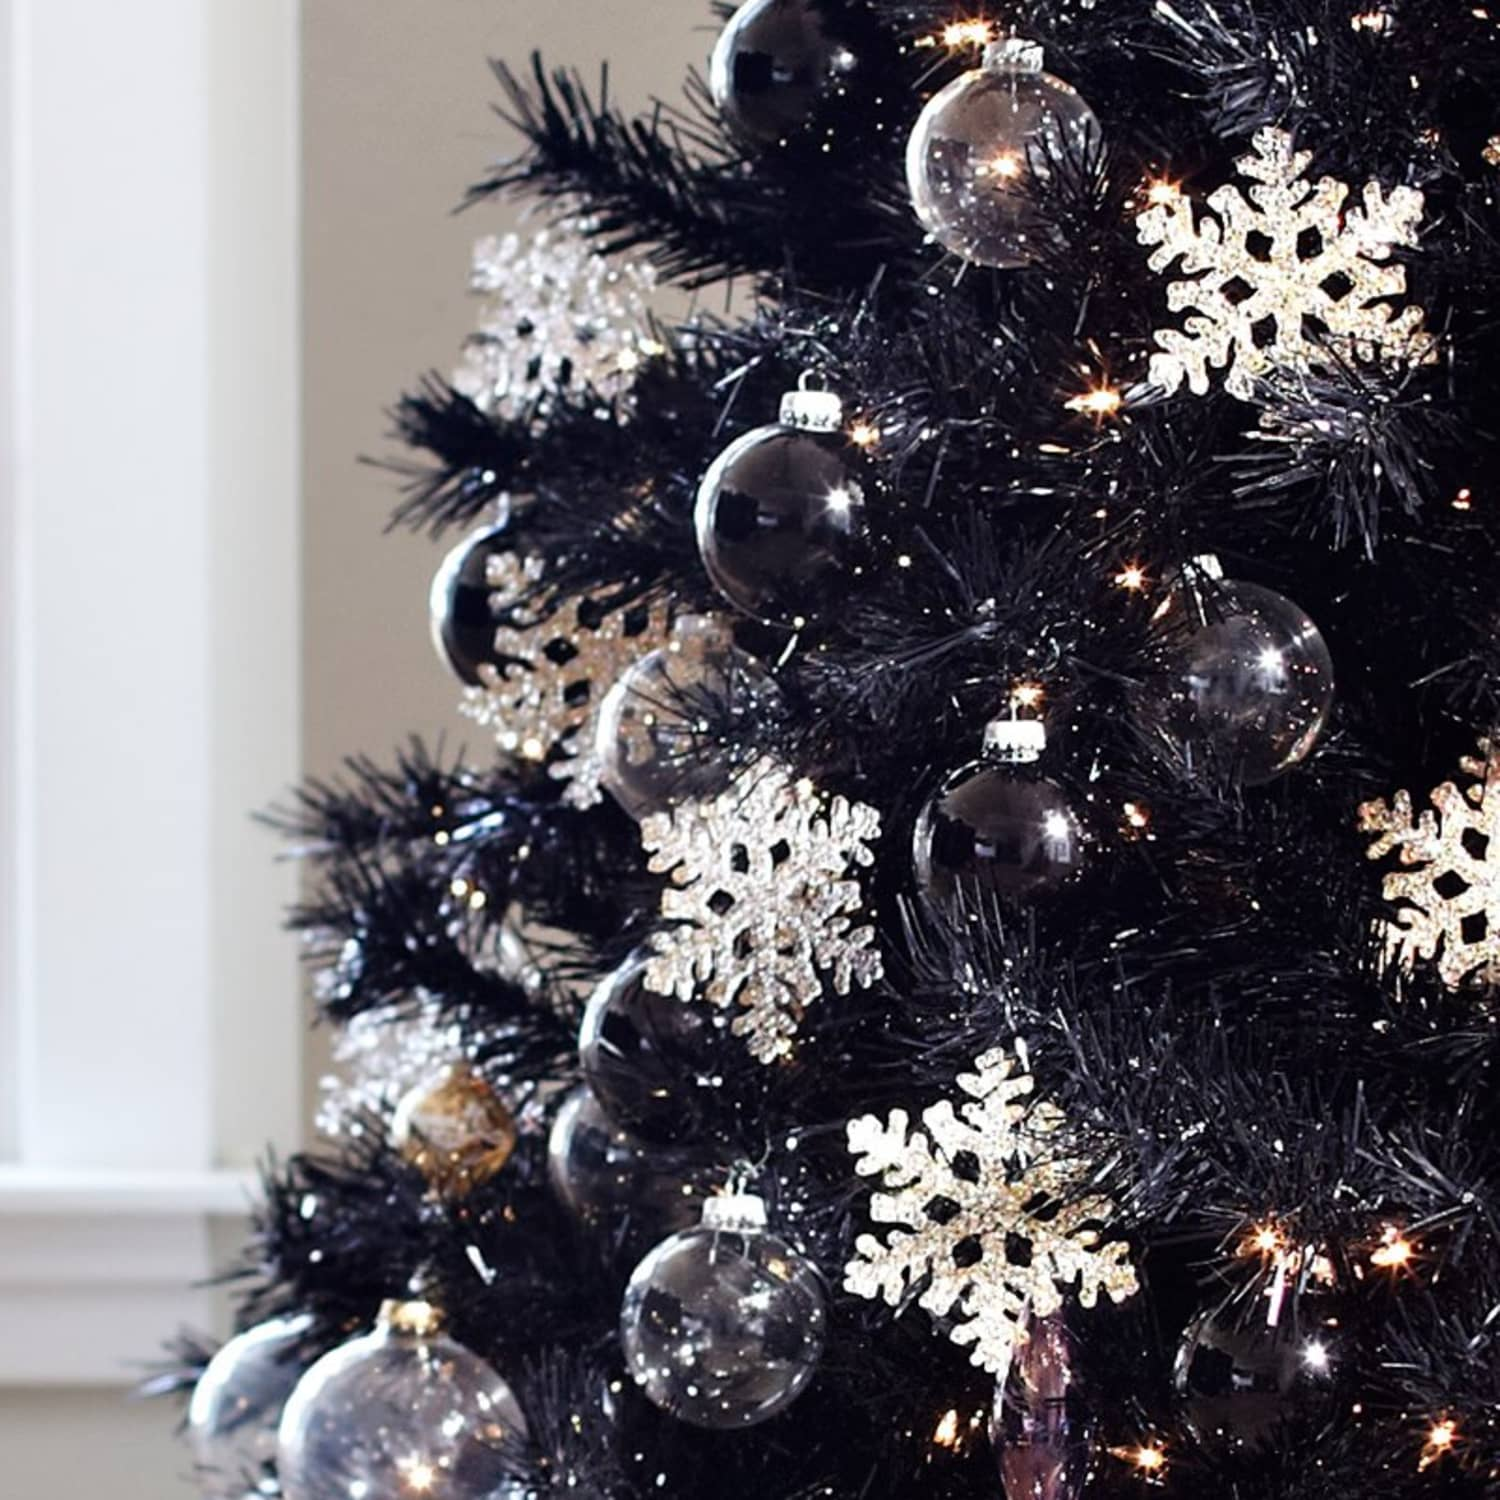 12 Christmas Tree.Treetopia Tuxedo Black Christmas Tree Review Apartment Therapy